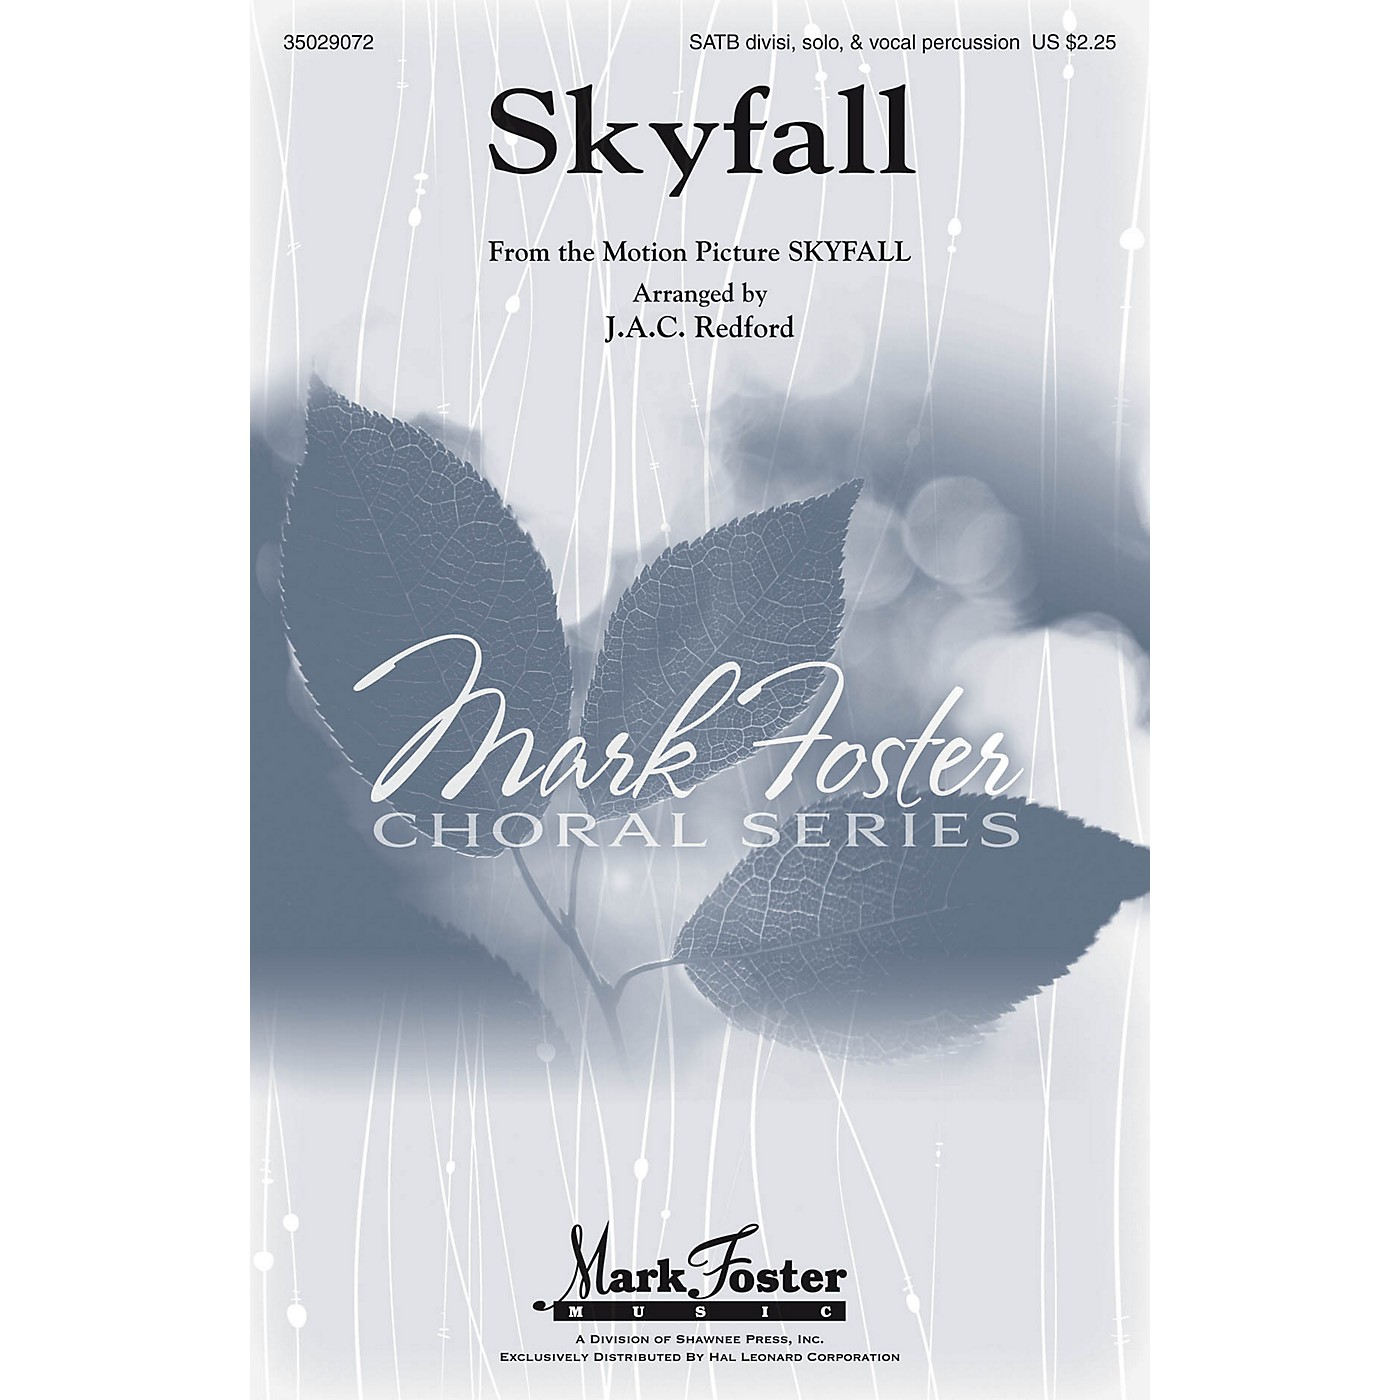 Mark Foster Skyfall (SATB Divisi, Solo & Vocal Percussion) SATB DV A Cappella by Adele arranged by J.A.C. Redford thumbnail